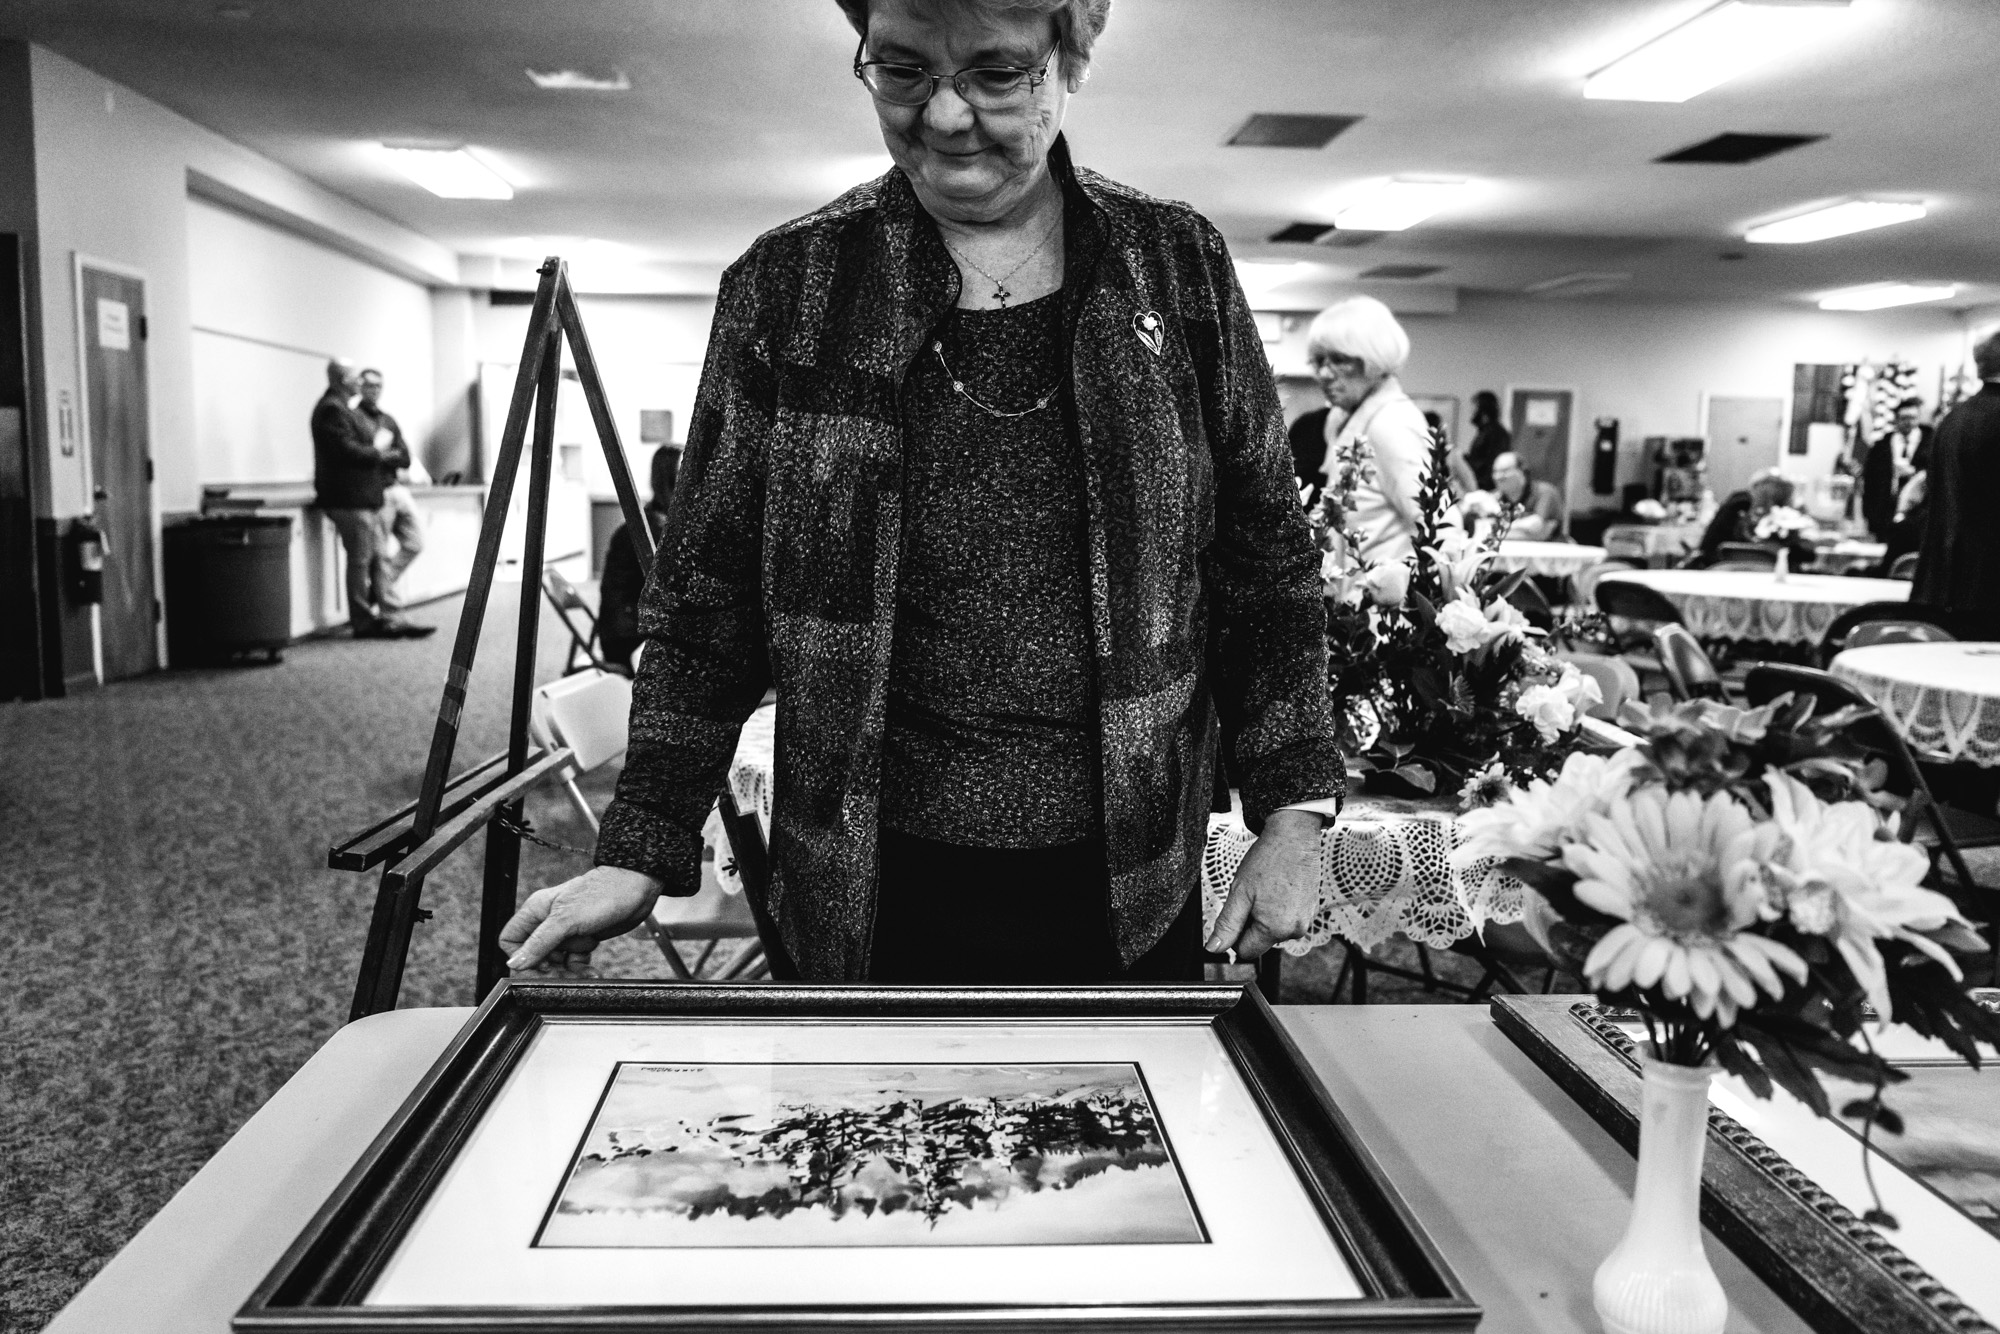 A woman looks at the artwork of Barbara Richard, whose memorial service she was attending